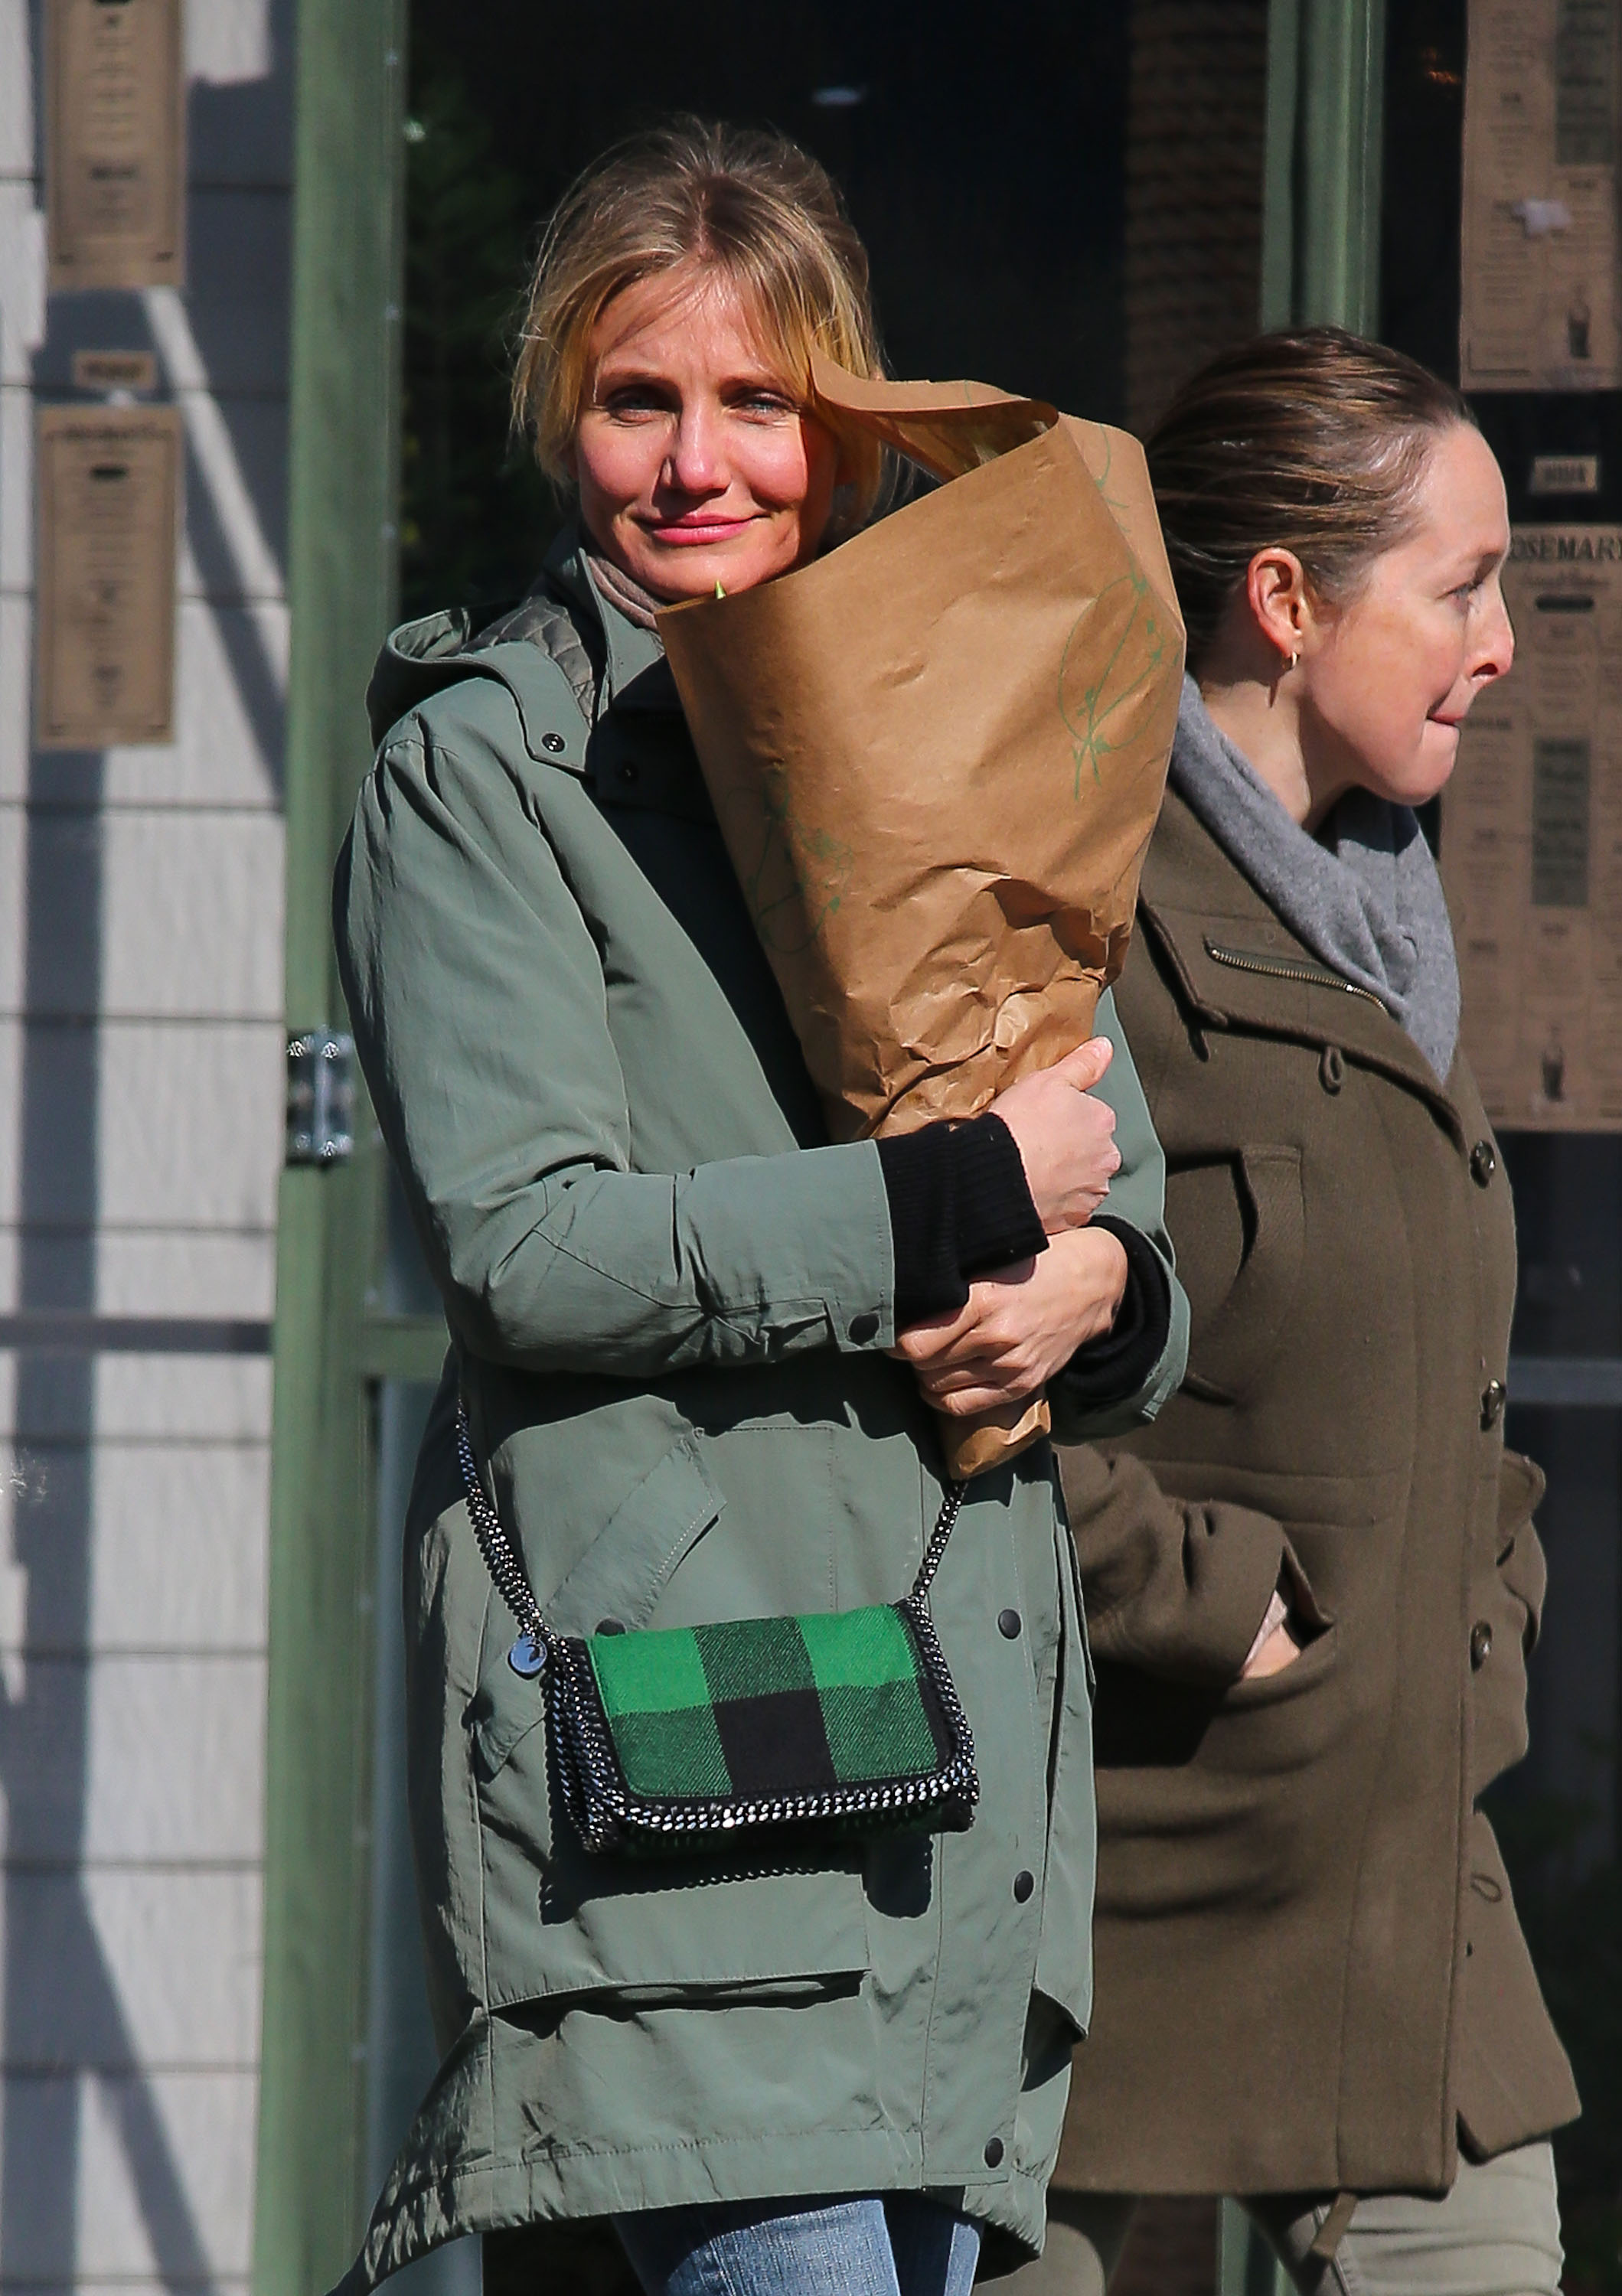 Cameron Diaz picked up a bouquet of flowers in NYC.